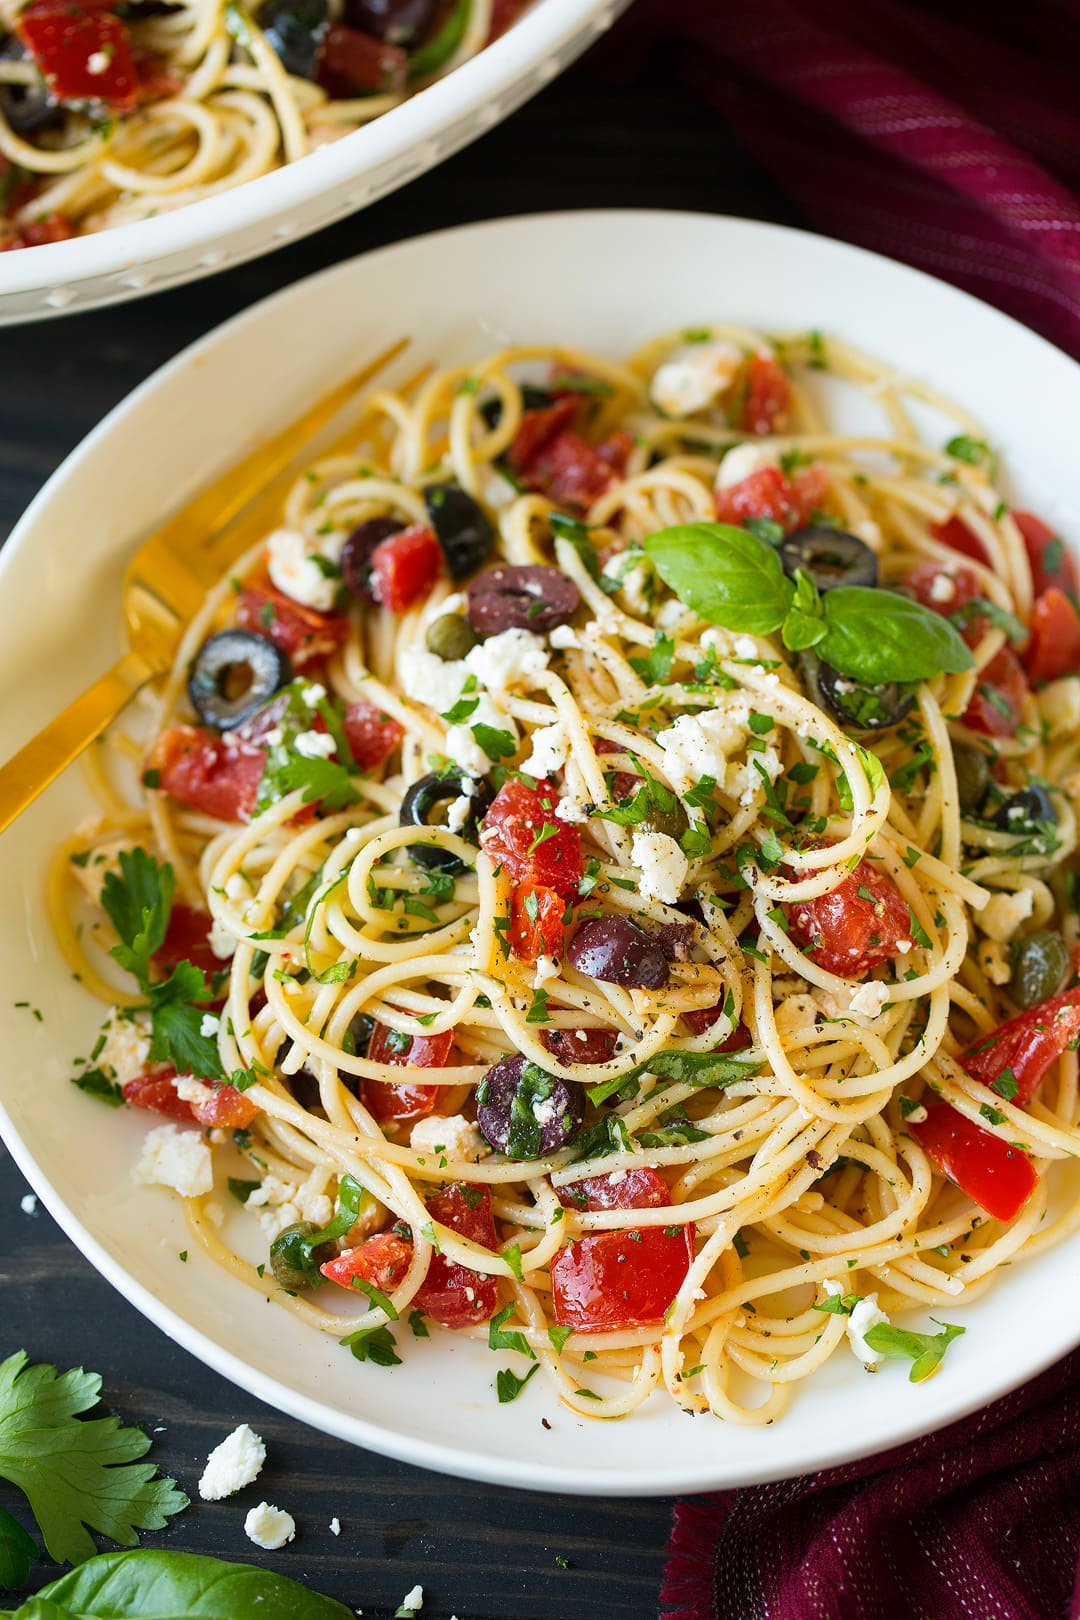 Greek spaghetti layered with tomatoes, black olives, kalamata olives, feta, basil, garlic, olive oil. Served in a pasta bowl on a brown wooden surface.